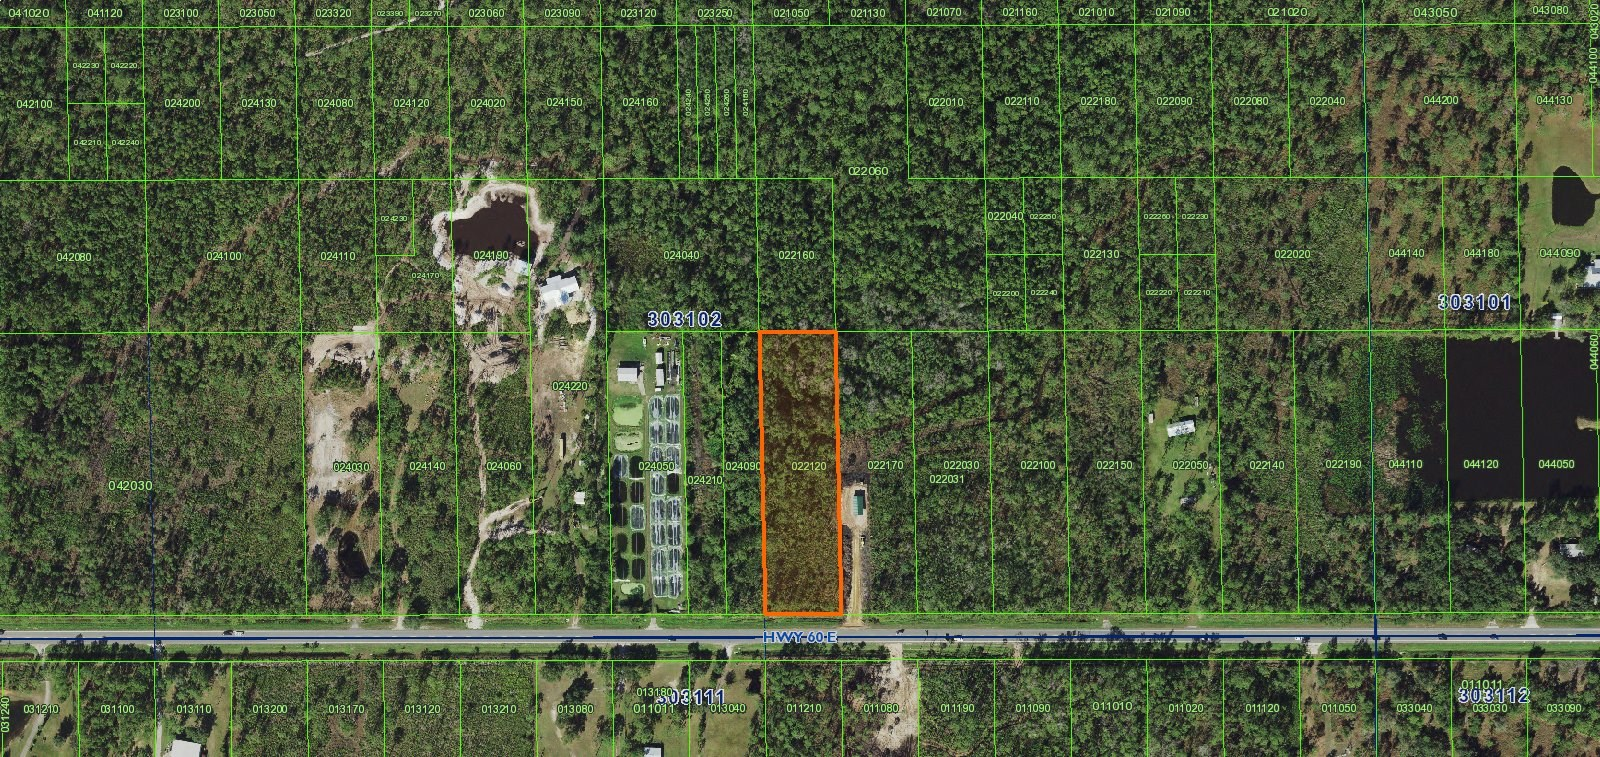 2.33 ACRES FOR SALE, LAKE WALES, CENTRAL FLORIDA